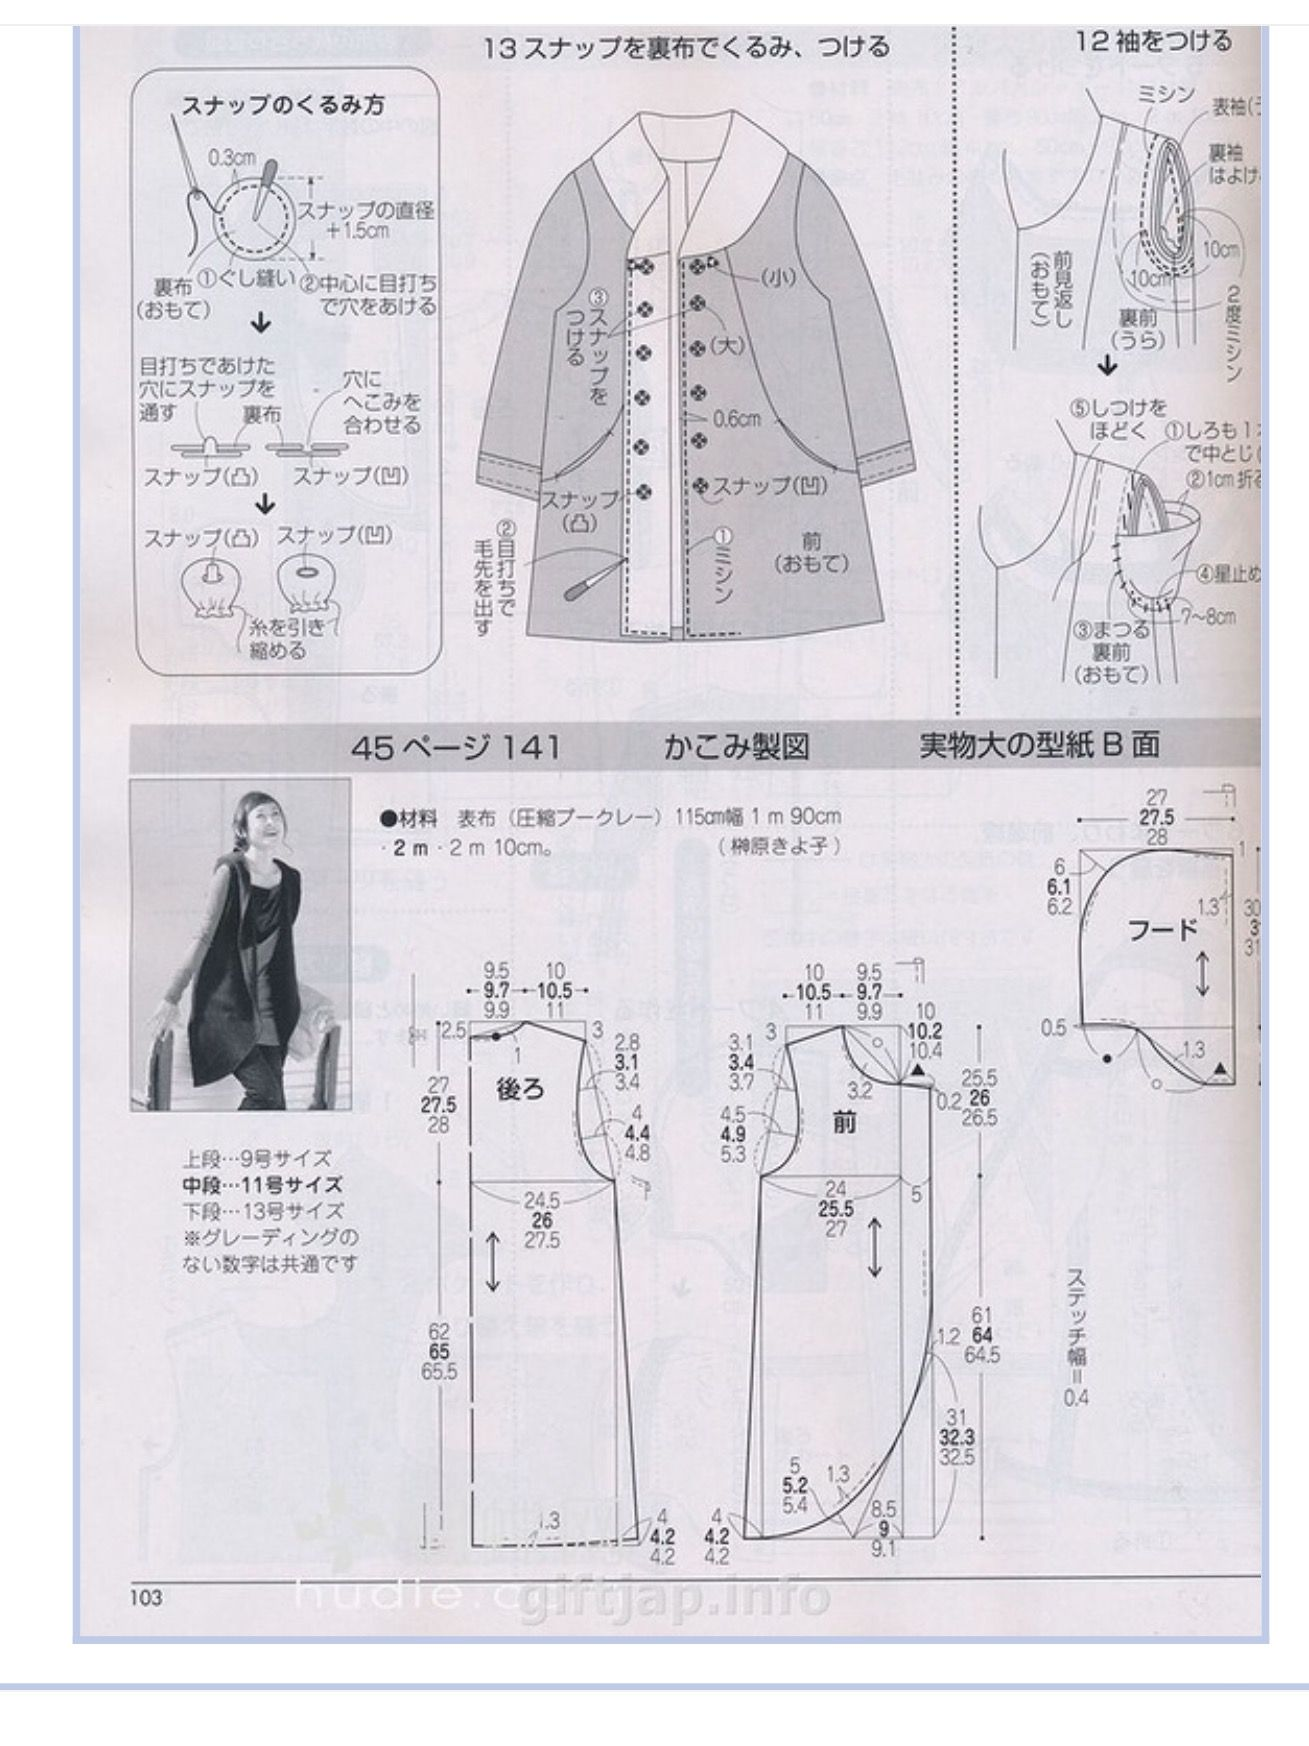 Pin by Chung Chiang Tai on 服裝 | Pinterest | Sewing patterns and ...